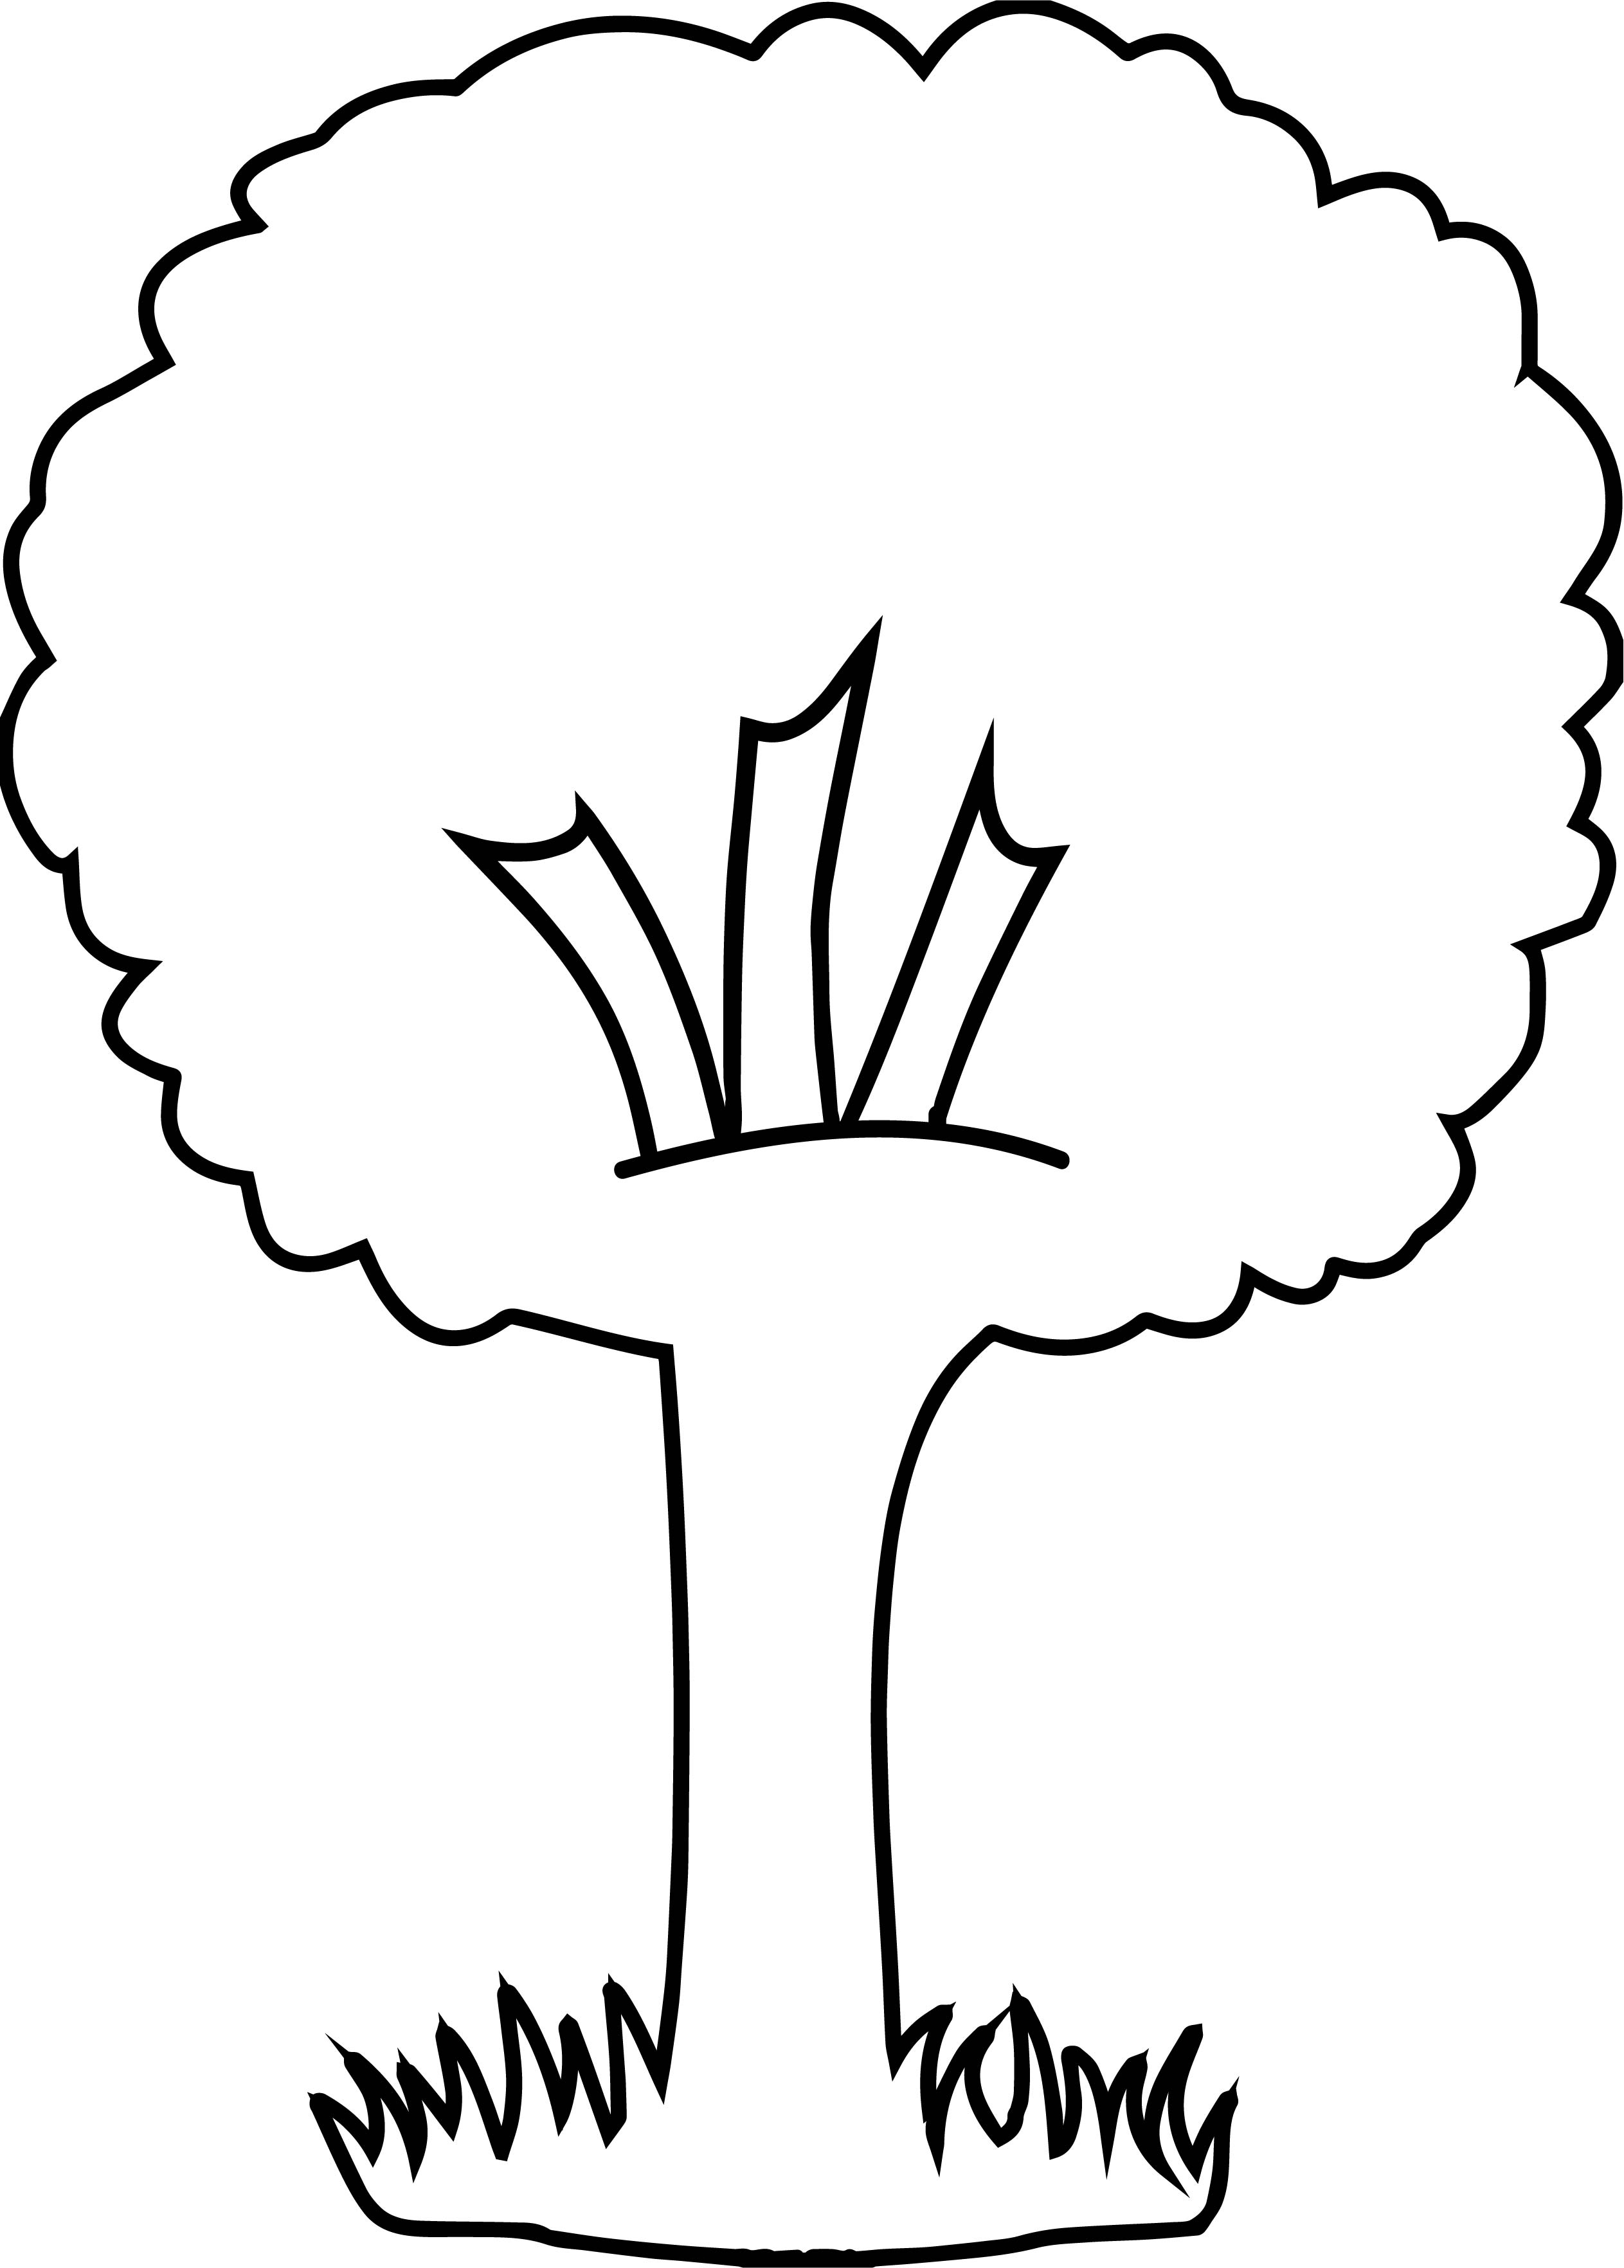 2526x3528 Victorious Apple Tree Coloring